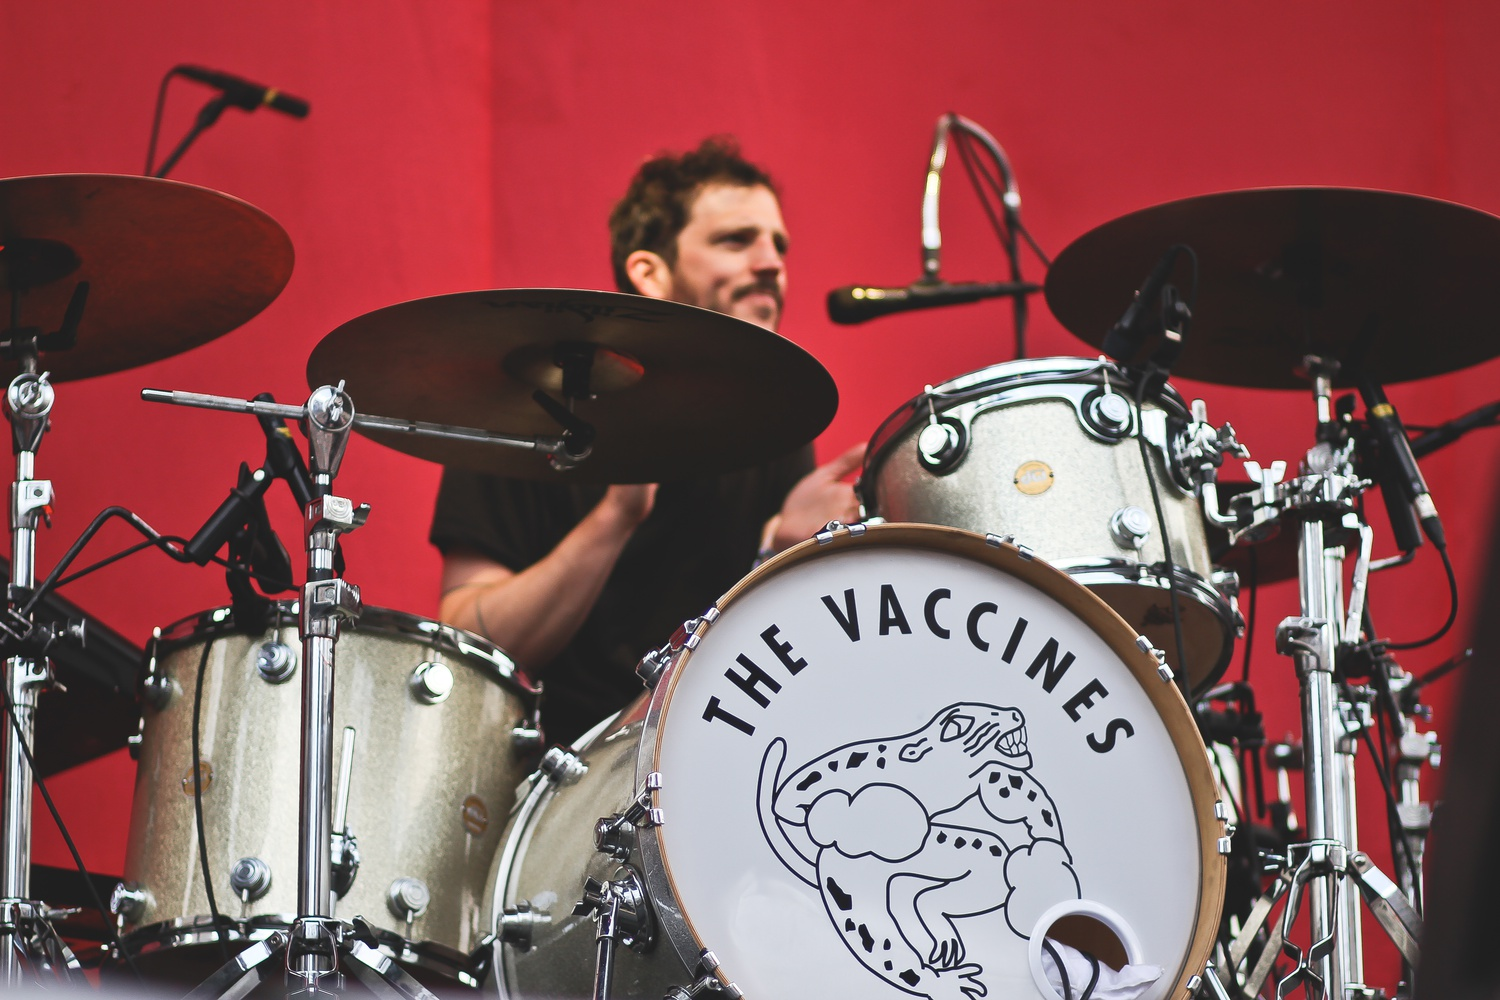 The Vaccines performs at Boston Calling on Saturday, May 28.